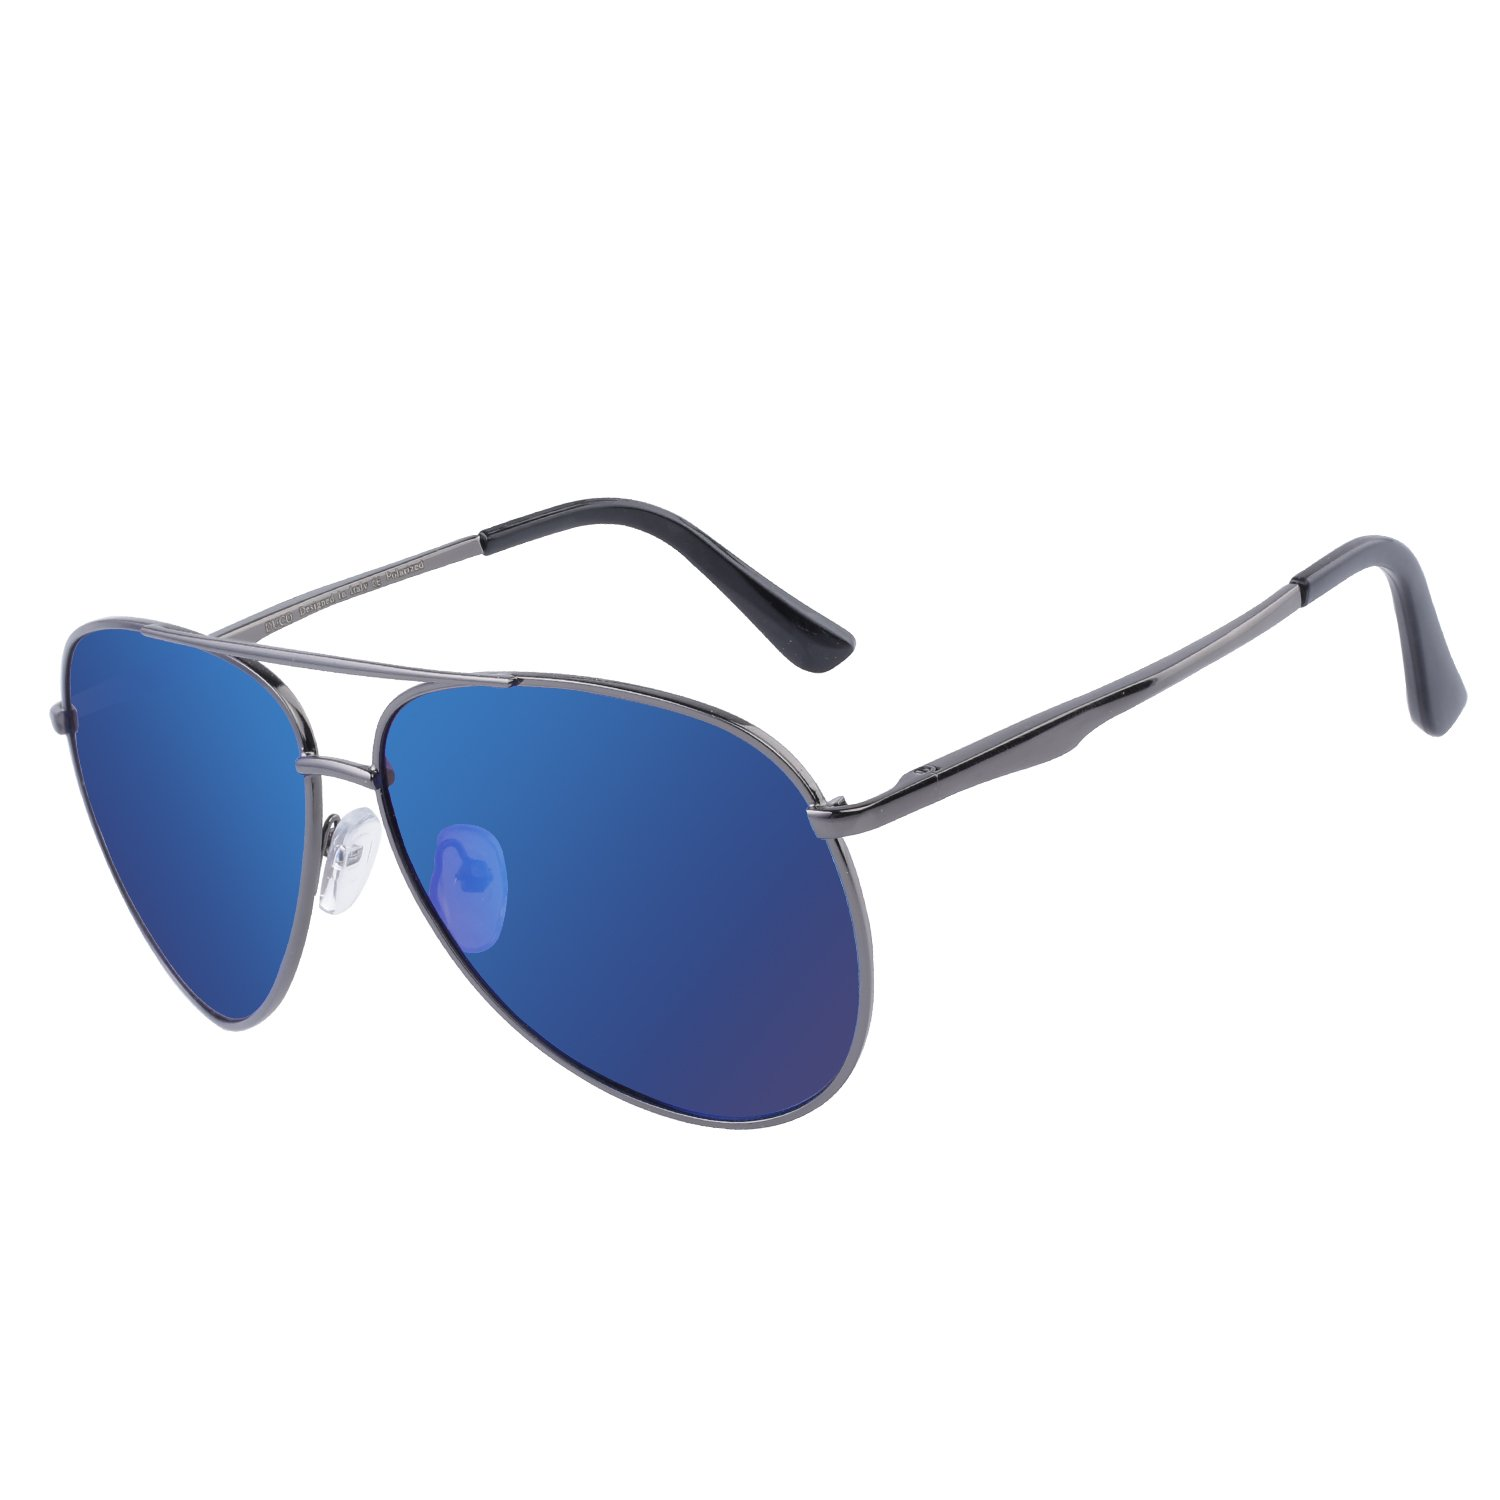 DUCO Pilot Style Polarized Sunglasses Sports Glasses Men 100% UV Protection 3025G by DUCO